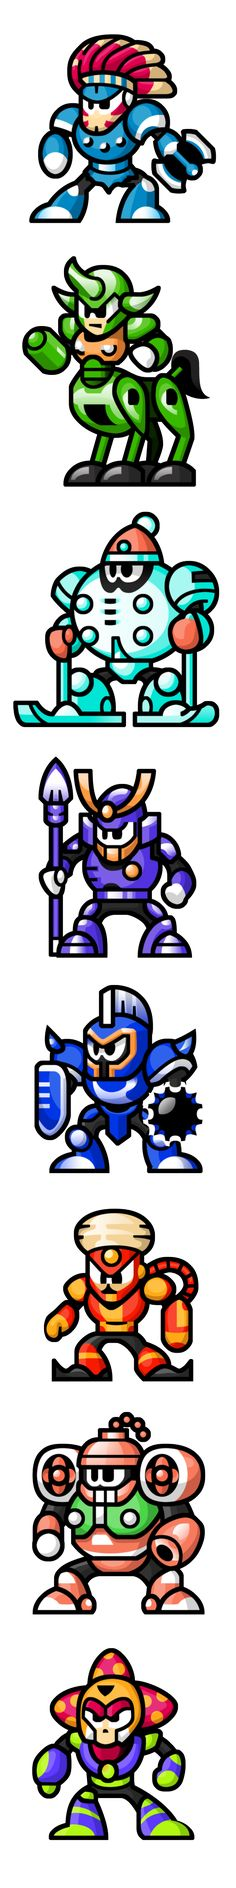 MegaMan 'Sprites'-Bosses of 6 by WaneBlade.deviantart.com on @DeviantArt